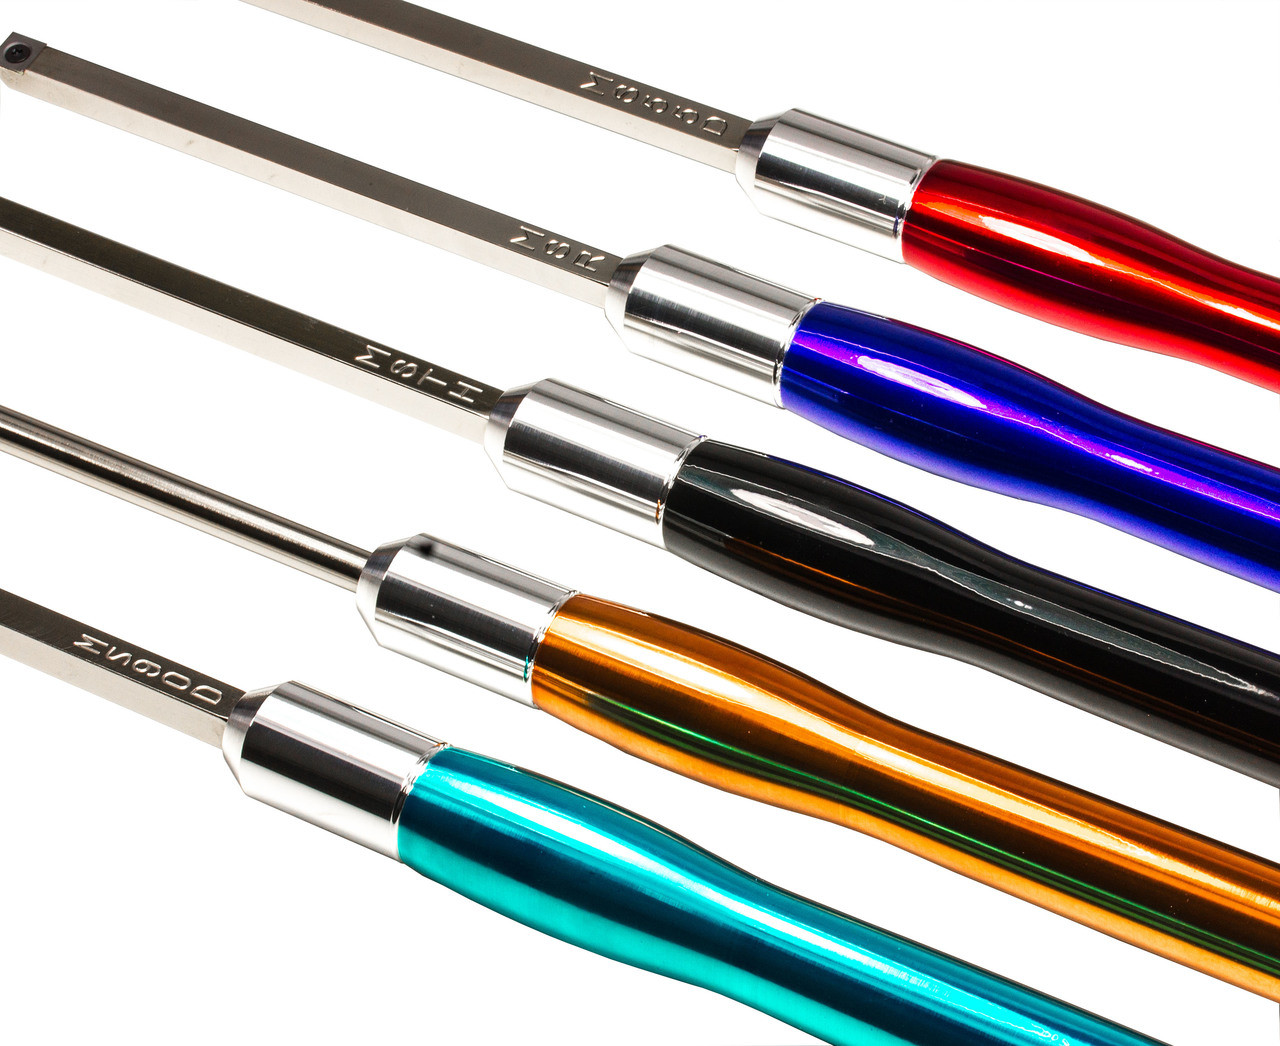 Carbide Turning Tool Set of 5 Mid Size Tools with Color Coded Handles